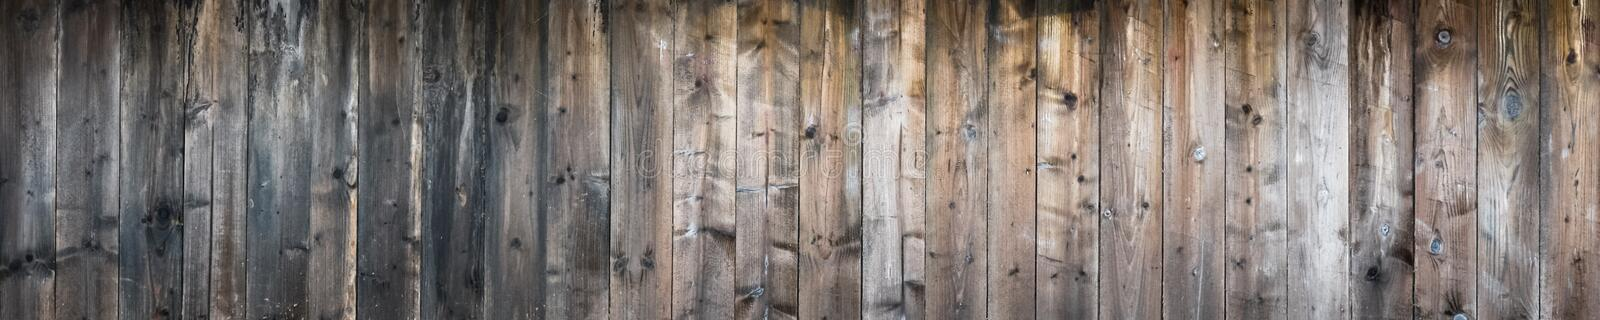 Weathered wooden texture for interior or exterior design solutions. Weathered wooden wall texture for industrial interior or exterior design solutions stock photo